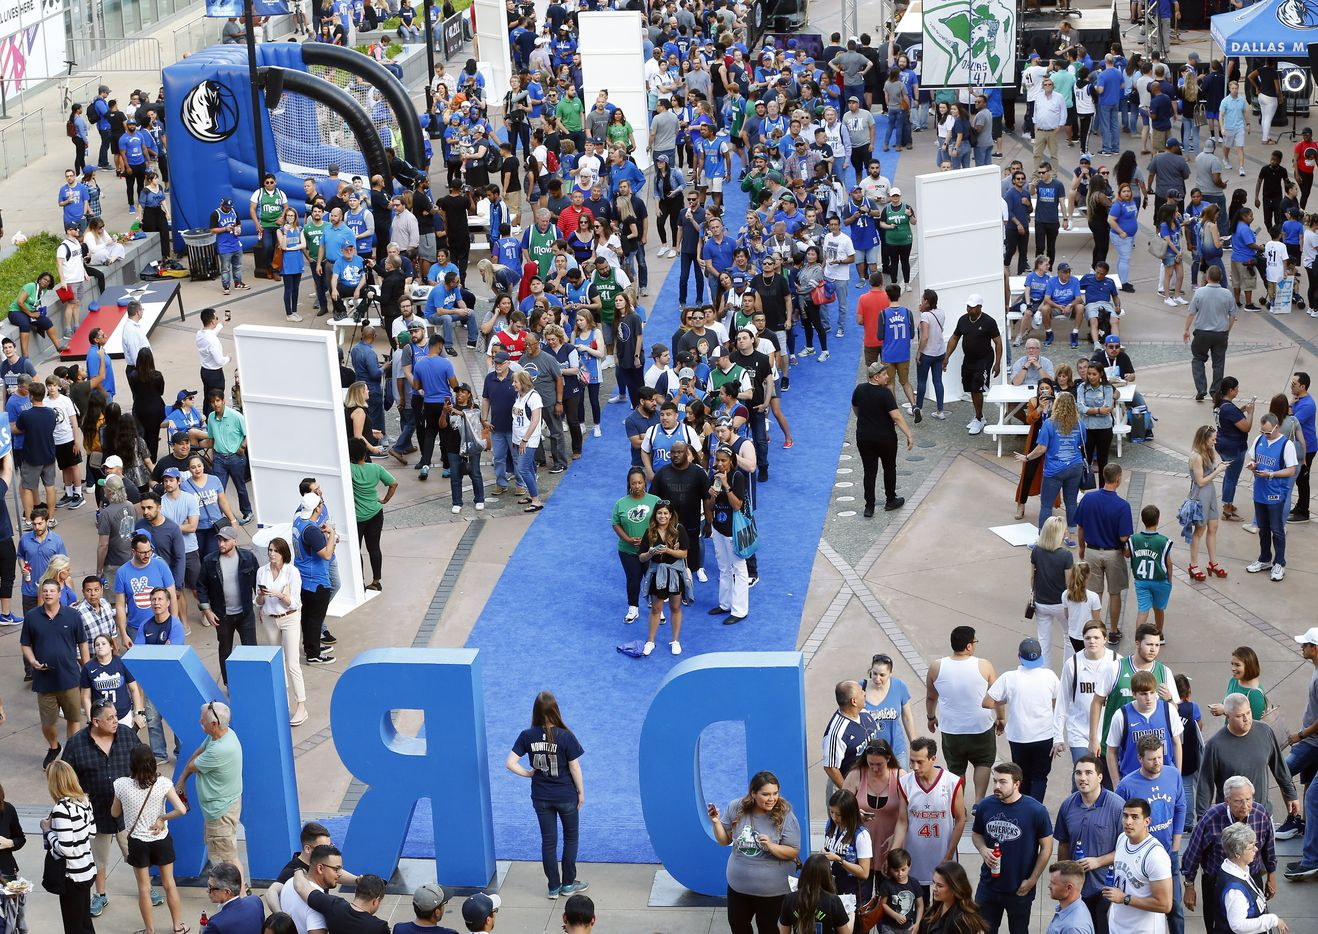 Dallas Mavericks fans arrive on the blue carpet and wait to have their photo in the DIRK sign outside American Airlines Center in Dallas, Tuesday, April 9, 2019. This will be Dirk Nowitzki's last home game and will finish out his 21st season this week. (Tom Fox/The Dallas Morning News)